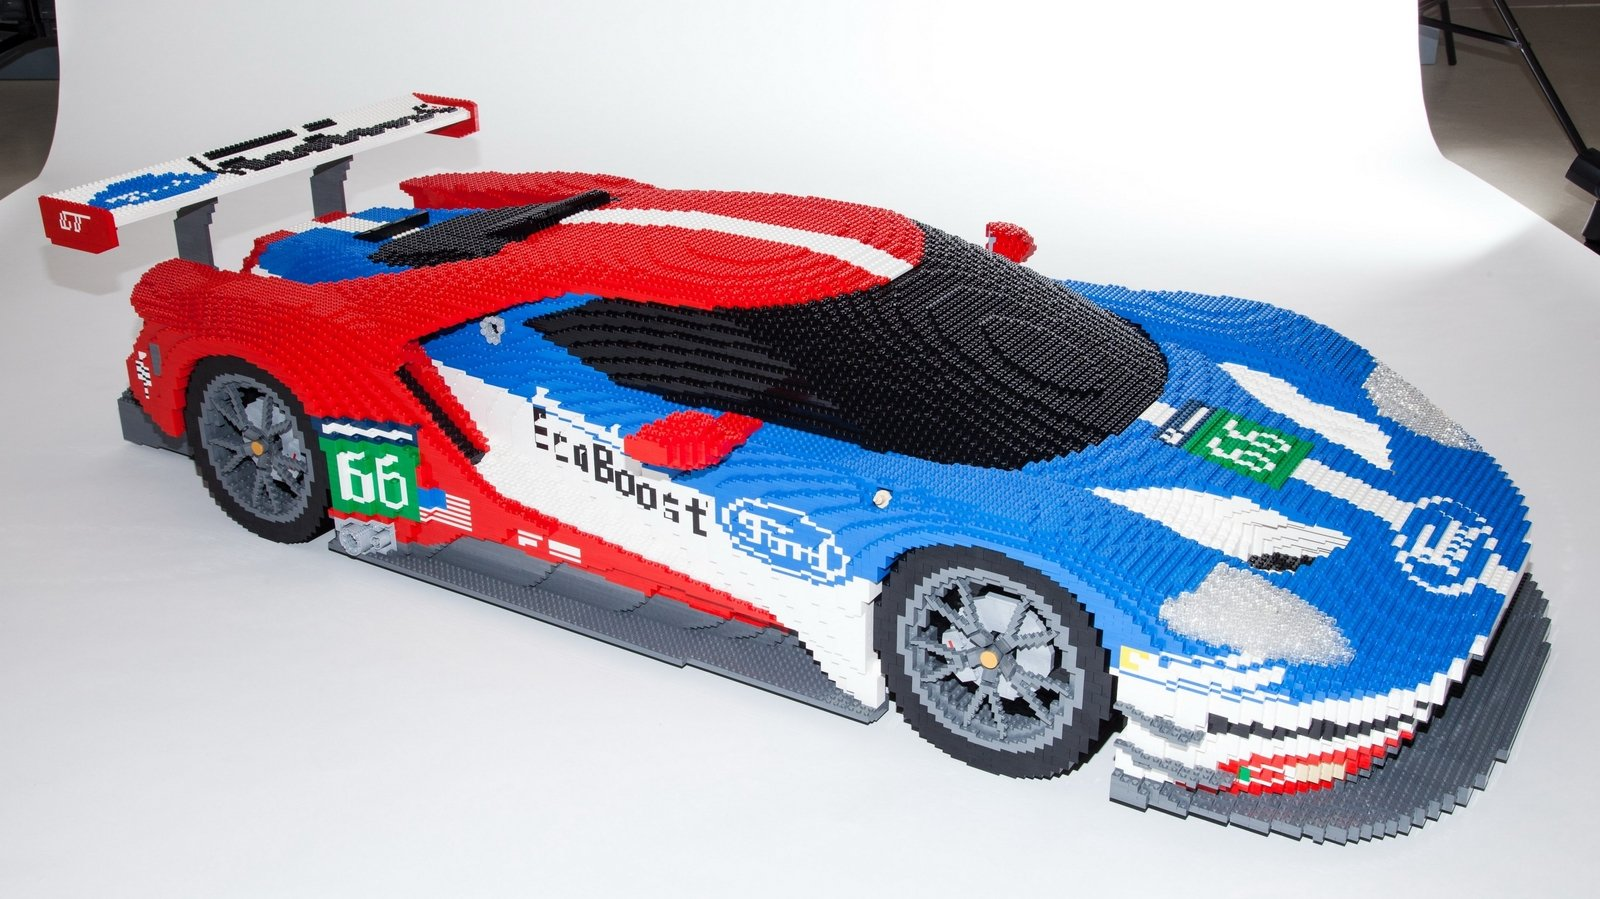 Lego Version Of Ford Gt Race Car To Be Displayed At Lemans Video Pictures Photos Wallpapers And Video